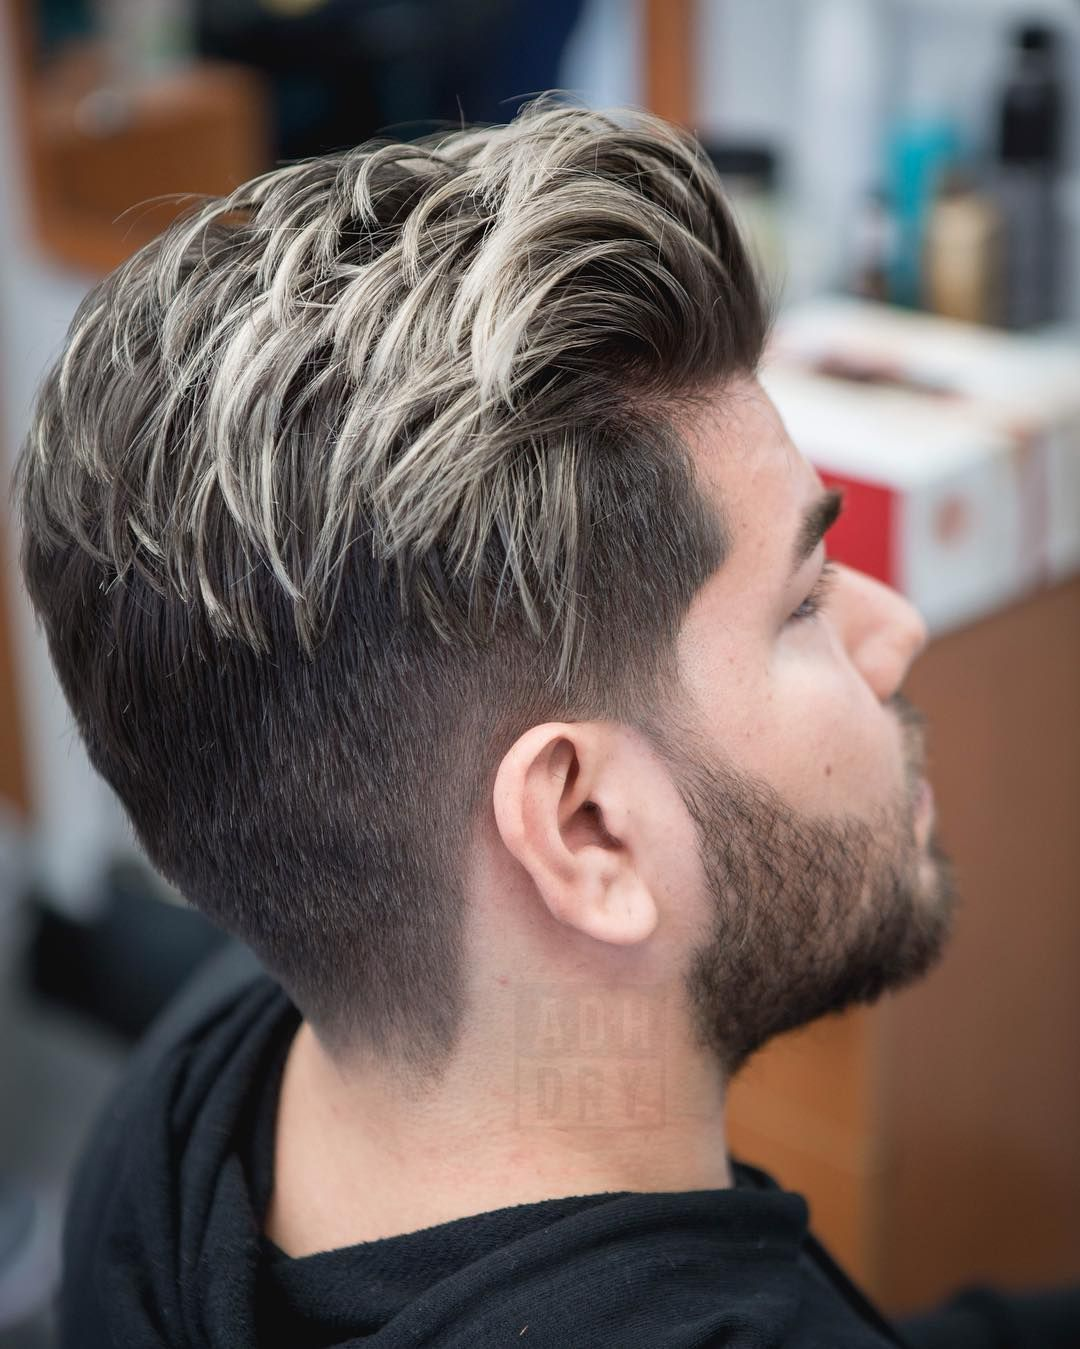 mens hair highlight styles 65 easy highlights on hair designs reveal the 3579